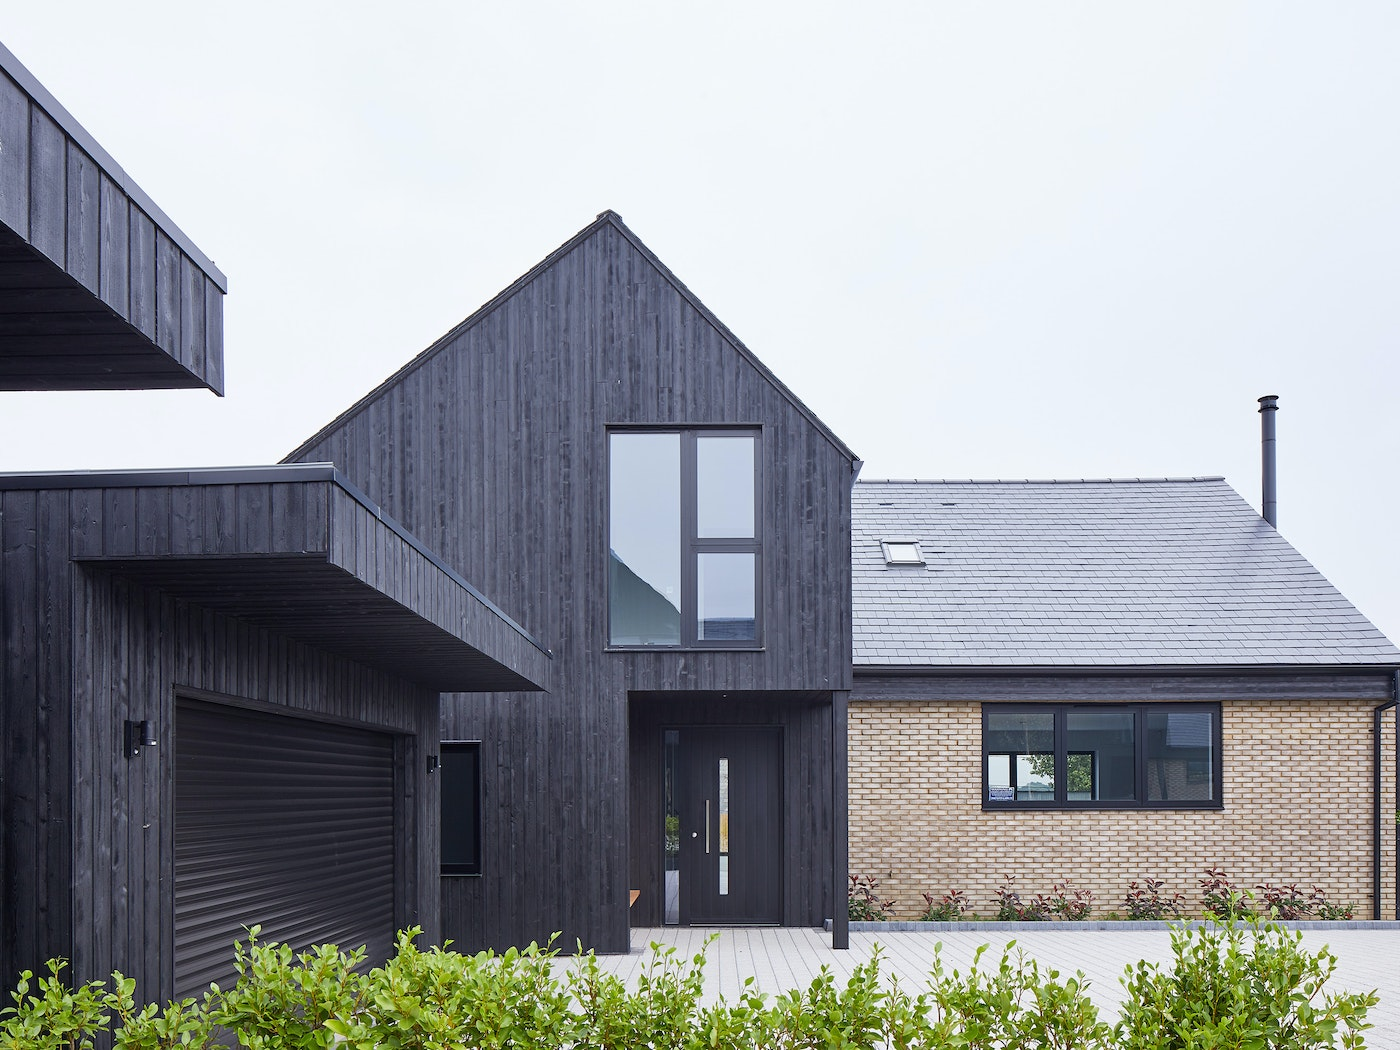 Urban Front's black painted Terano doorsets work well with the charred cladding in this development